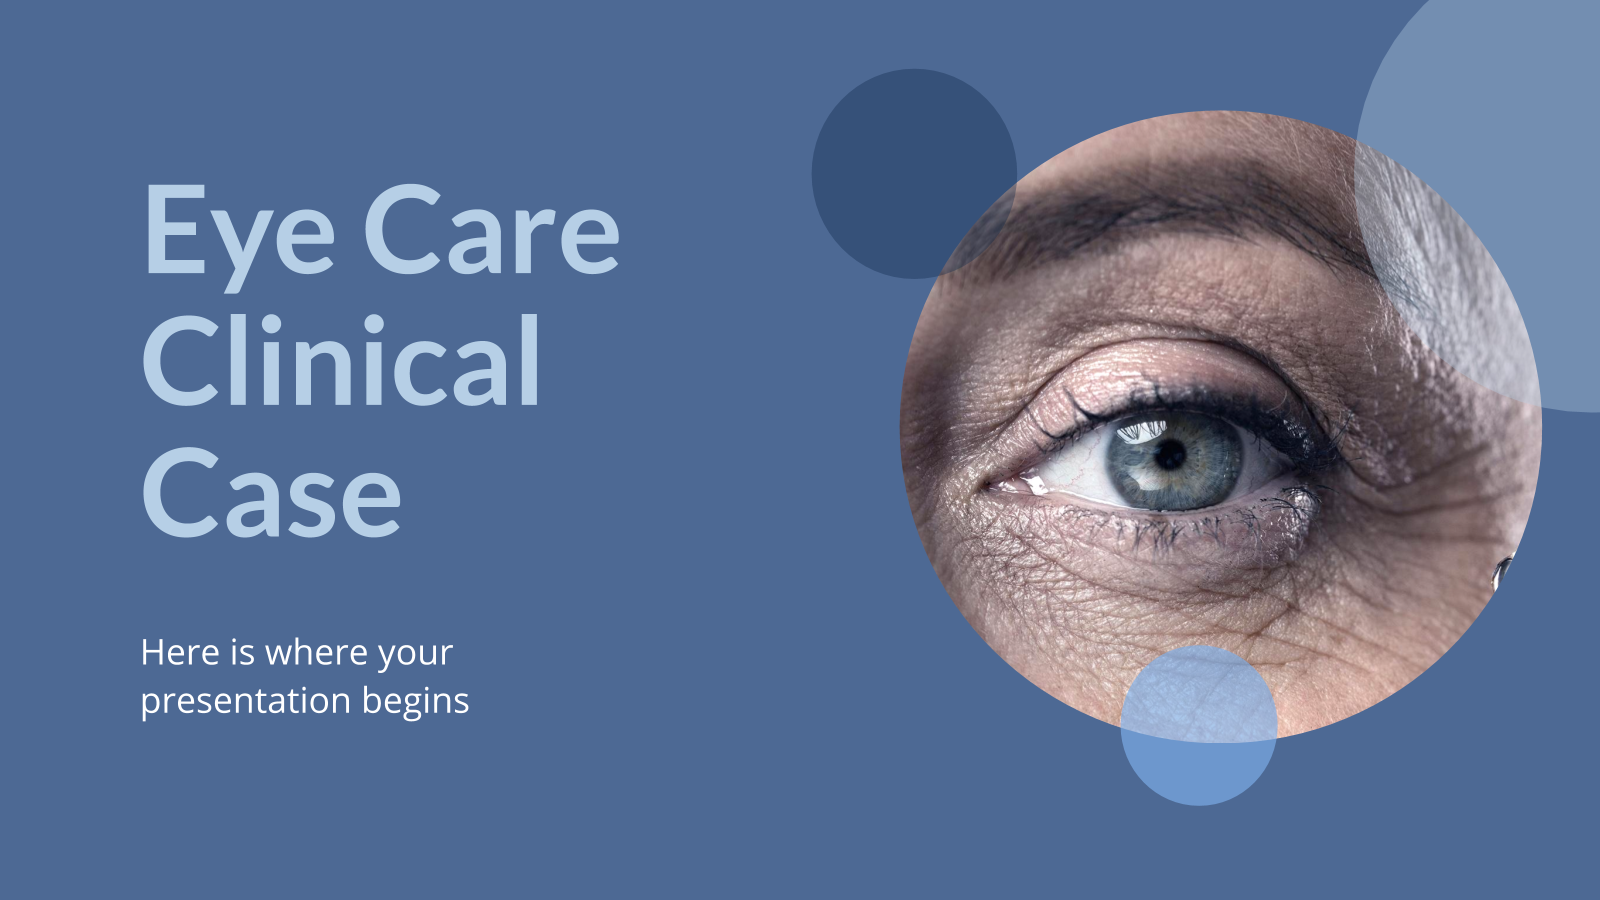 Eye Care Clinical Case presentation template